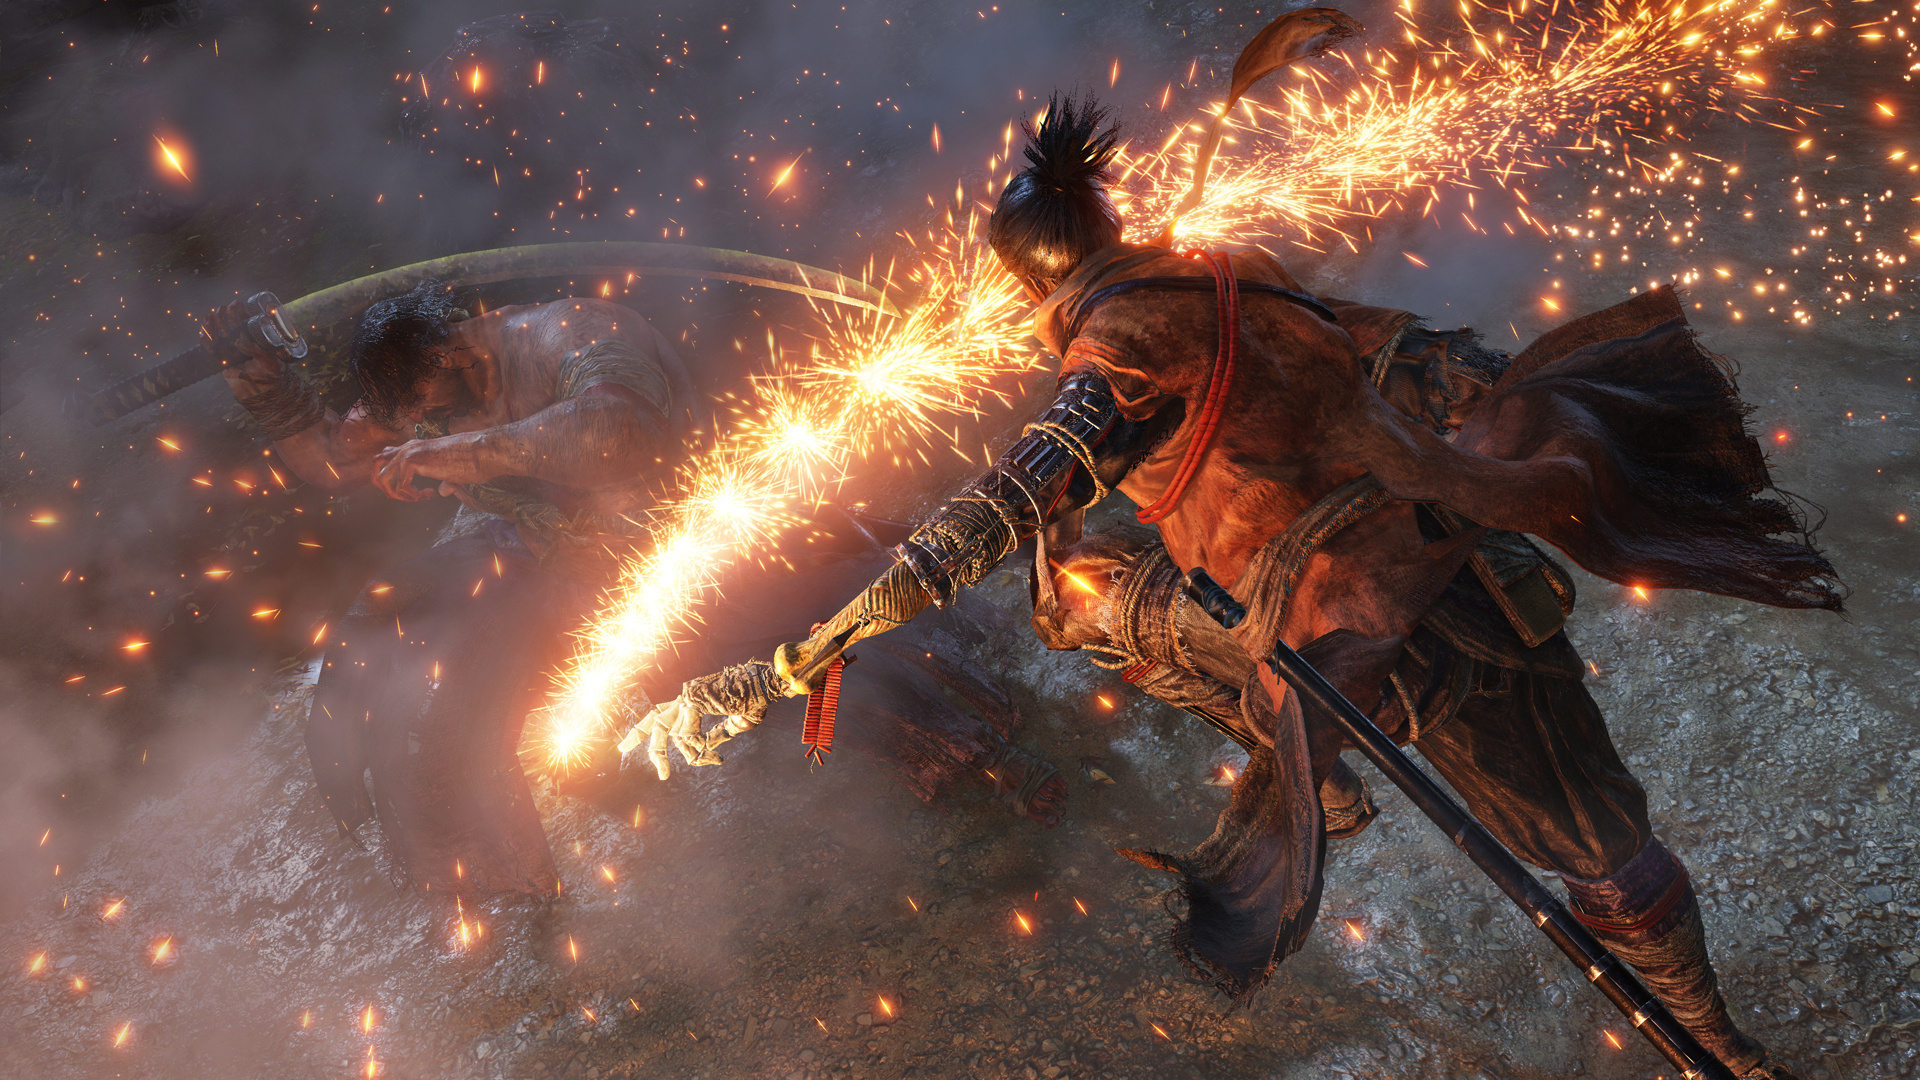 Sekiro Shadows Die Twice New Mod Unlock Framerate, Adds